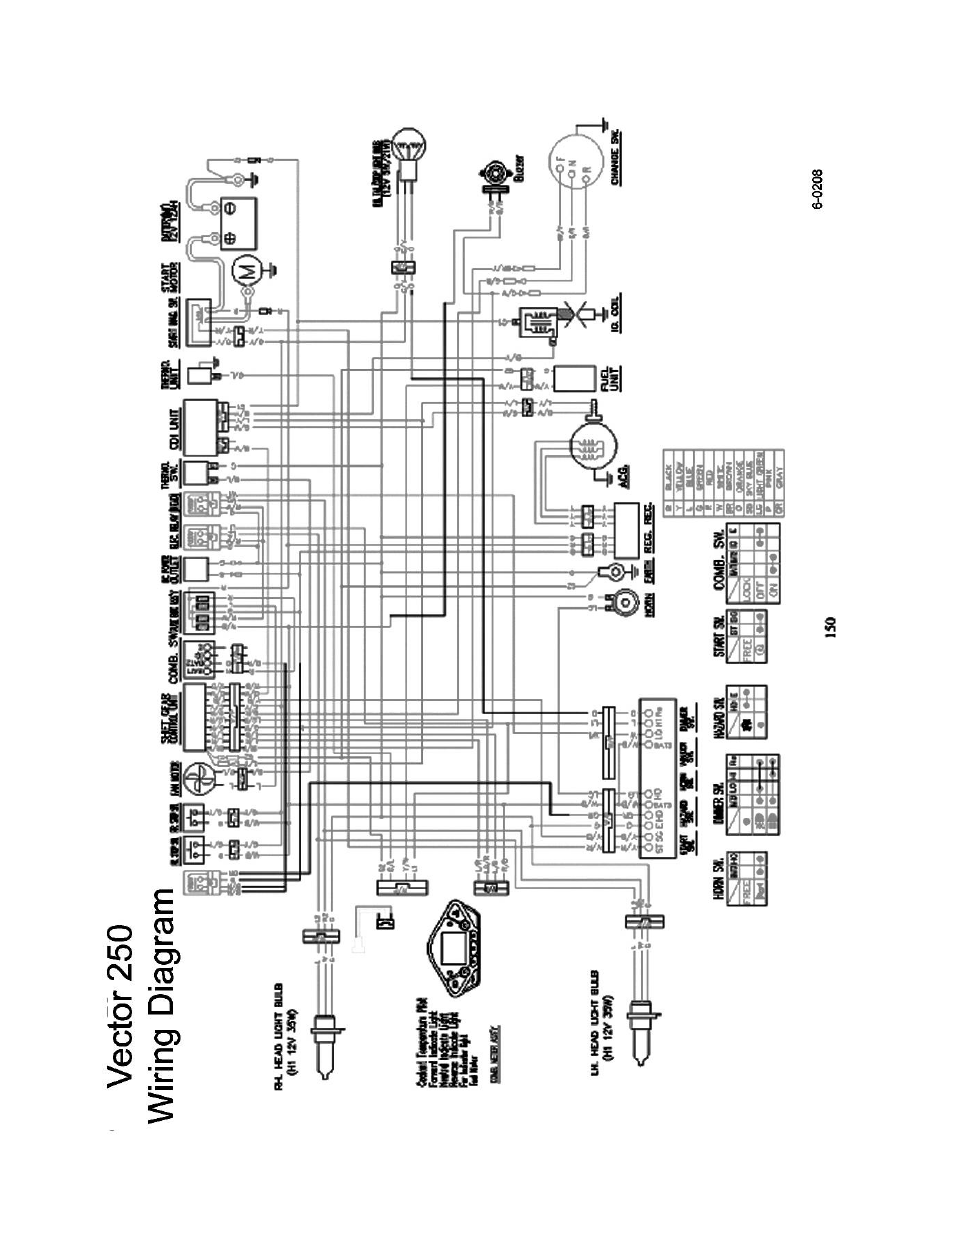 Wire Diagram Eton Vector 250r User Manual Page 28 32